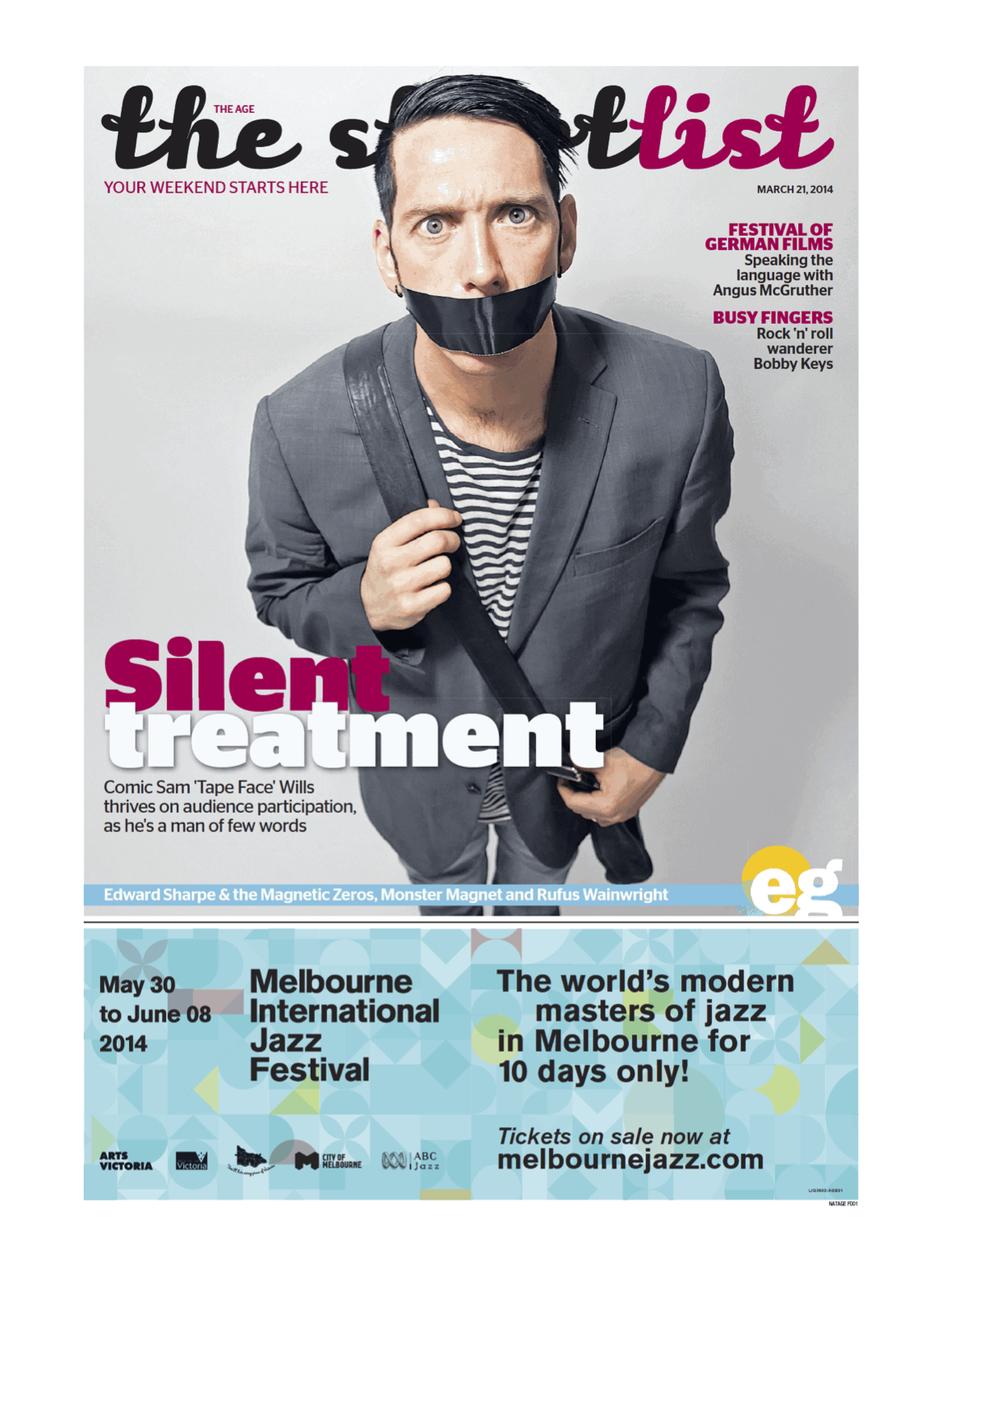 TheAge_TheShortlist_21.0314_cover.jpg